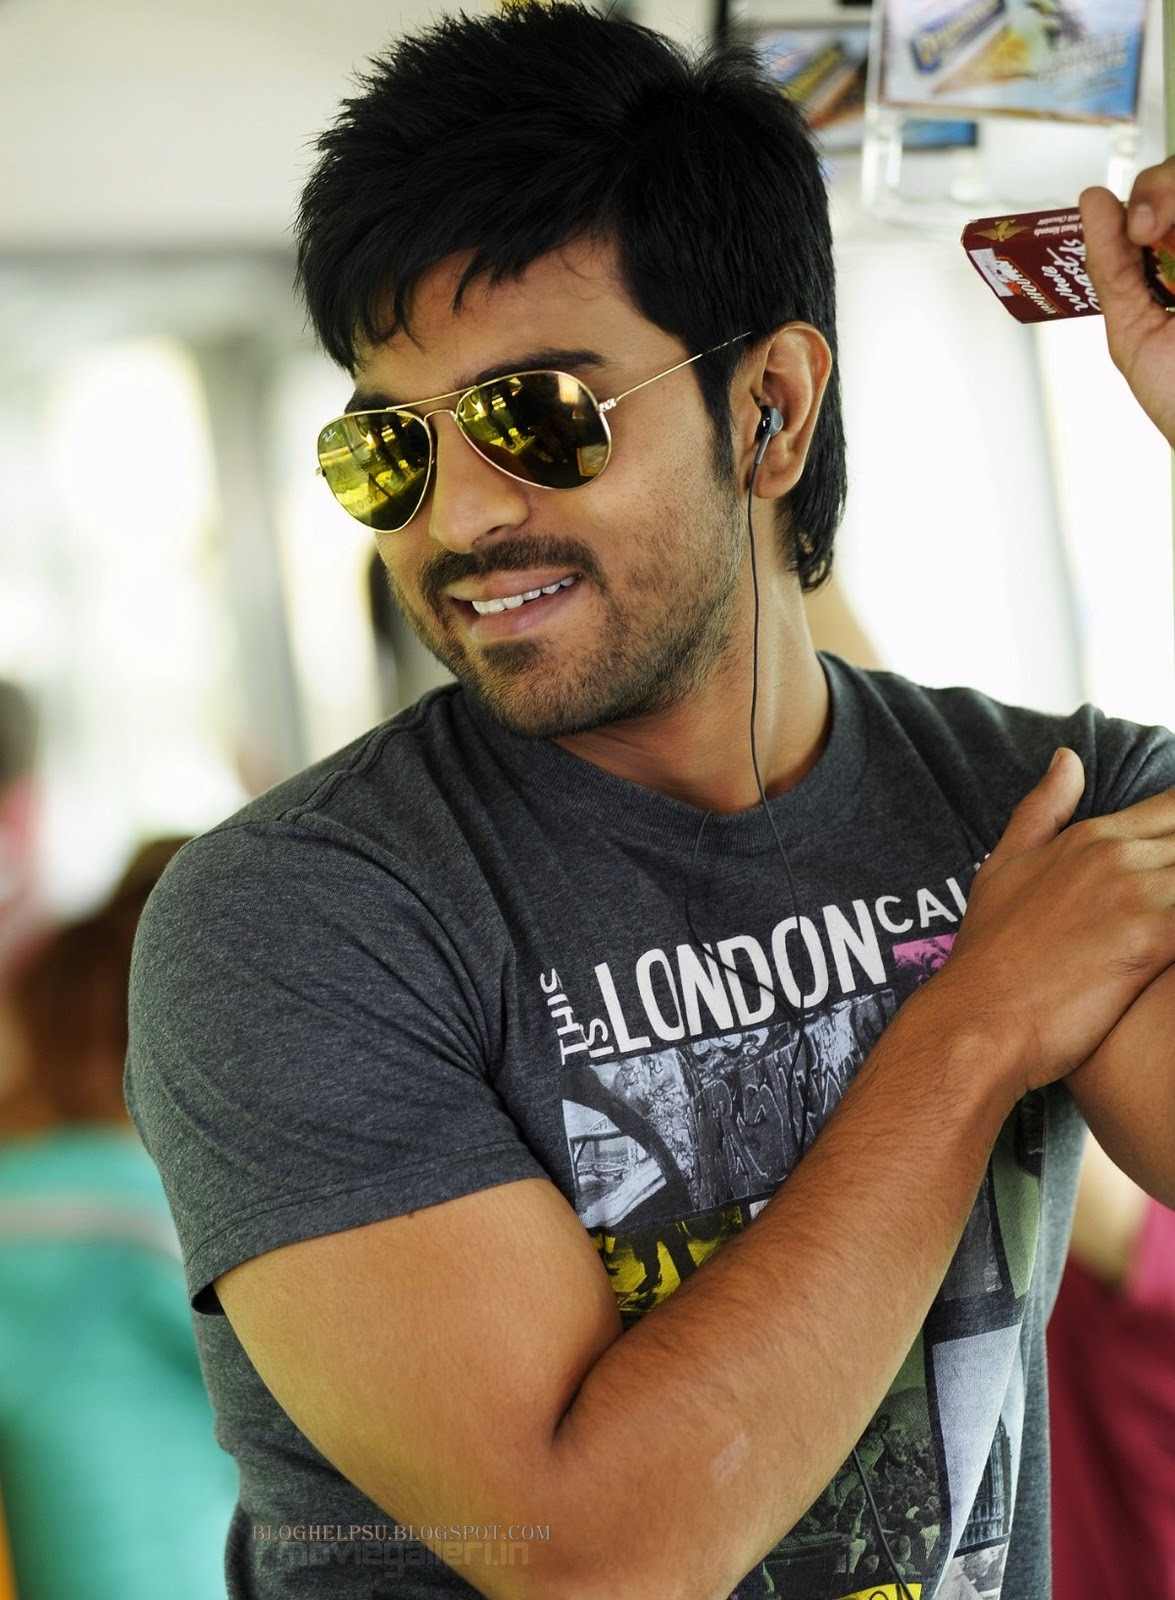 http://1.bp.blogspot.com/-Gu9enOK2mMw/Tlcw95VUfdI/AAAAAAAAAKE/xHiKUD4spSg/s1600/orange-ram-charan-tej-wallpapers-telugu-movie-stills.jpg4.jpg